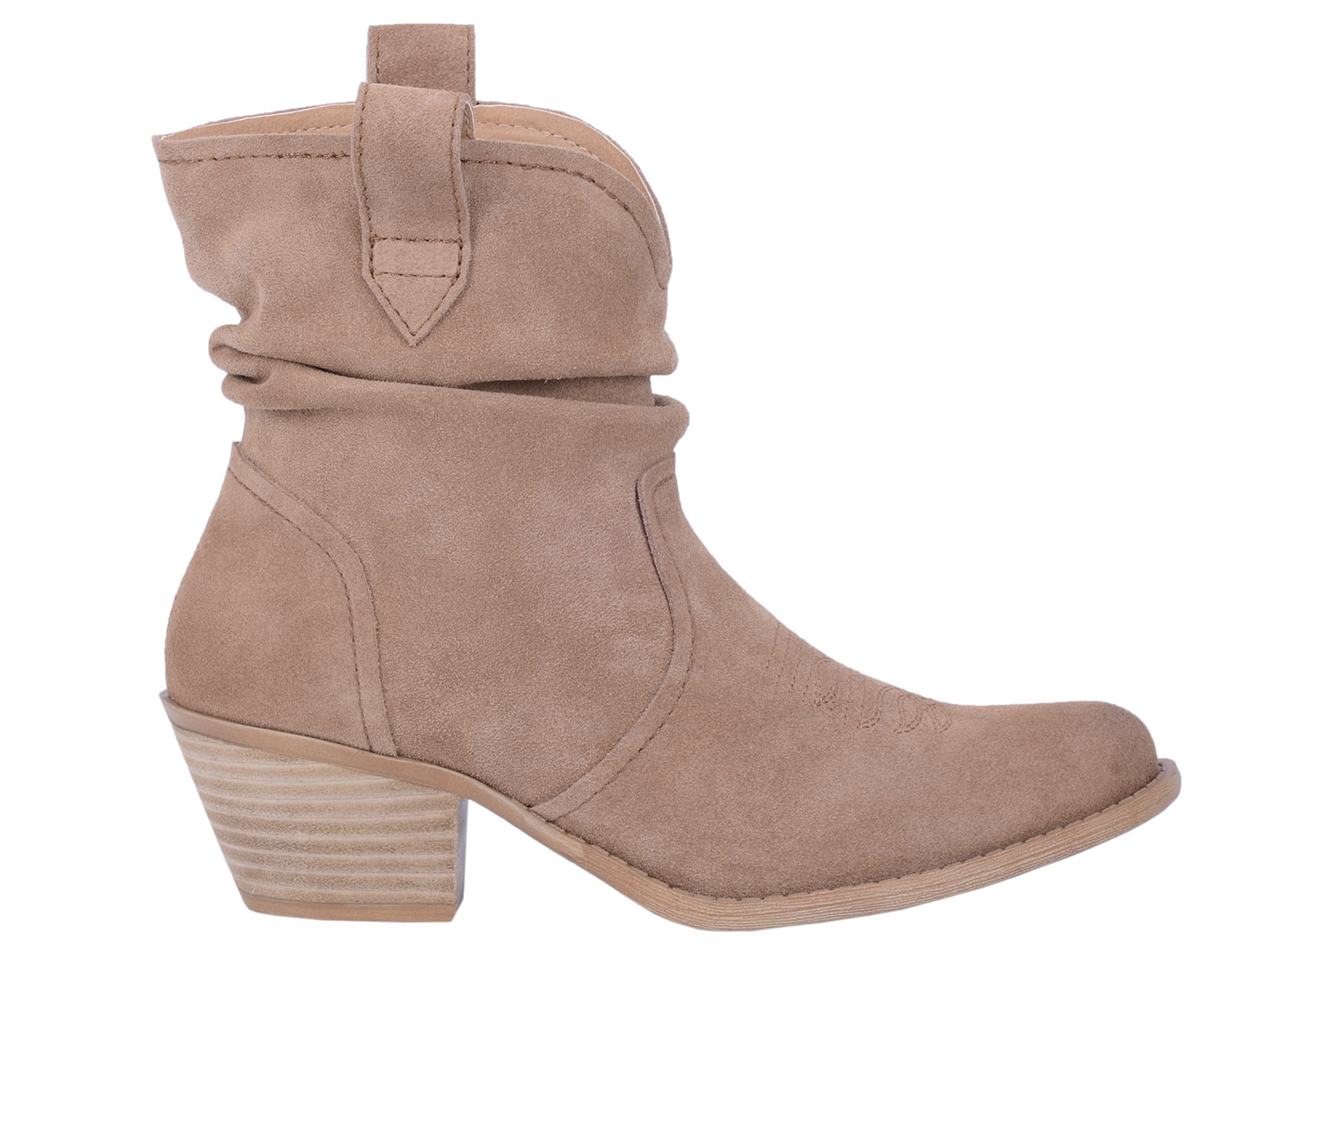 Dingo Boots Jackpot Women's Boots (Brown - Leather)